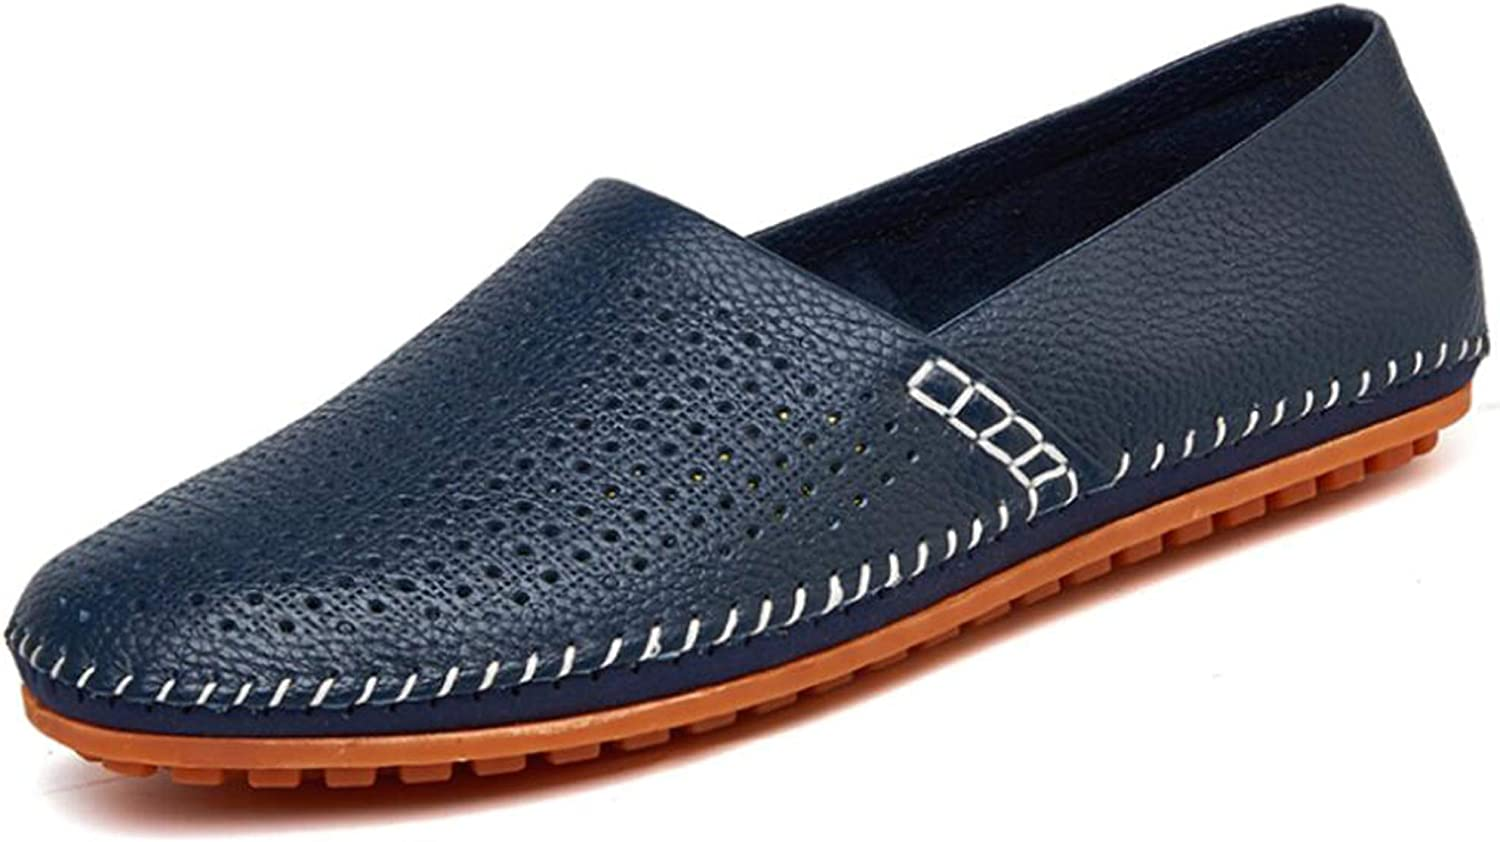 Go Tour Mens Classy Slip-On Casual Mocassin Leather Loafers The Go Driving Boat Shoes